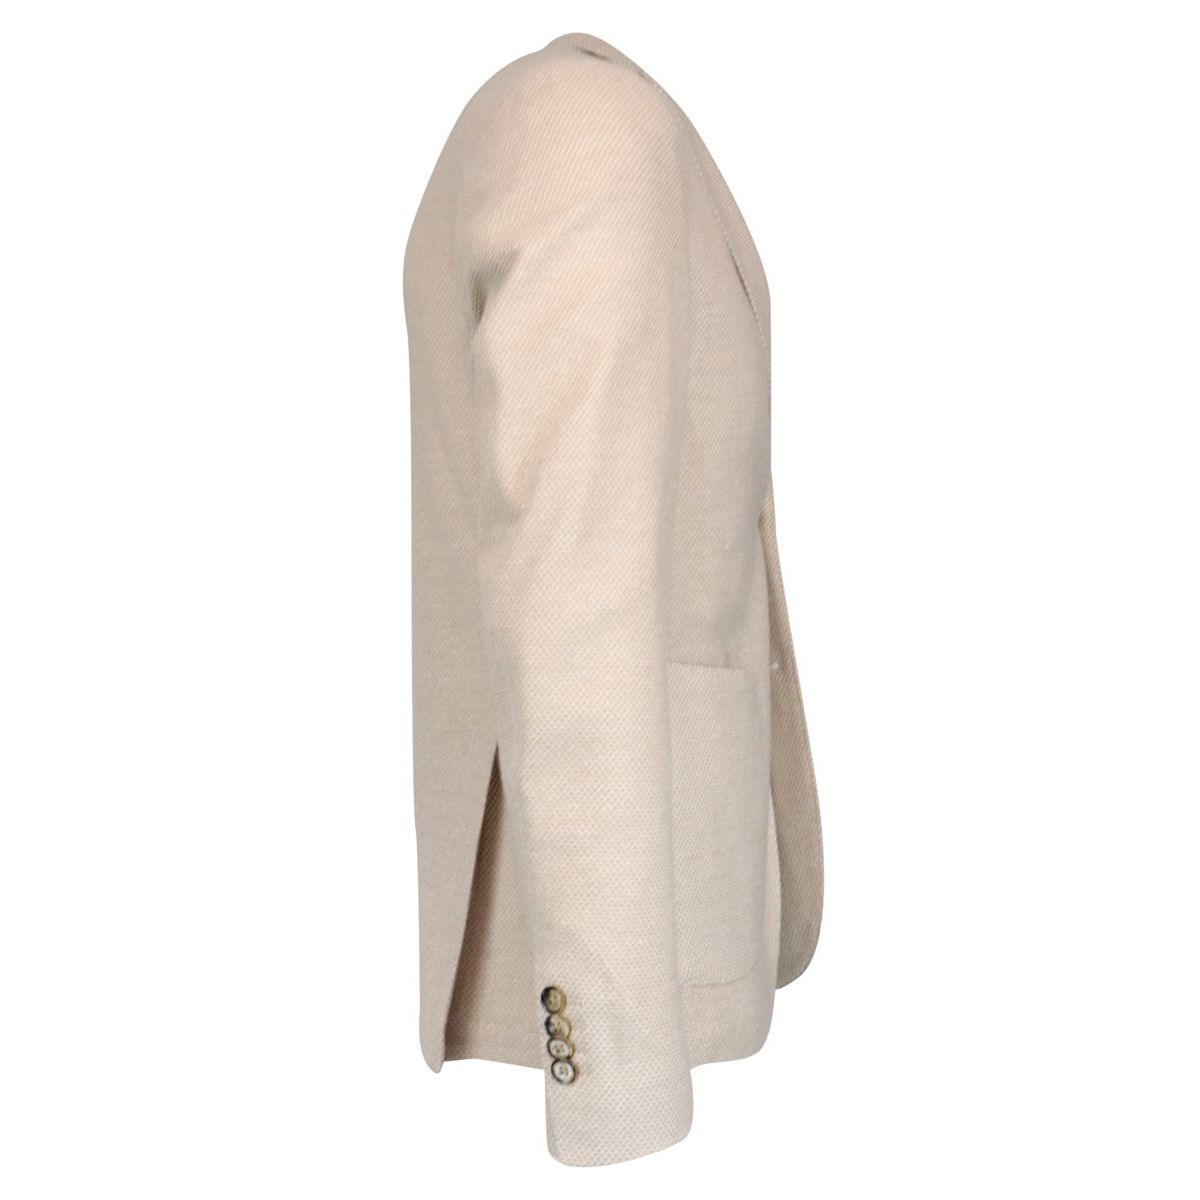 Slim two-button jacket in textured cotton and linen Cream L.B.M. 1911